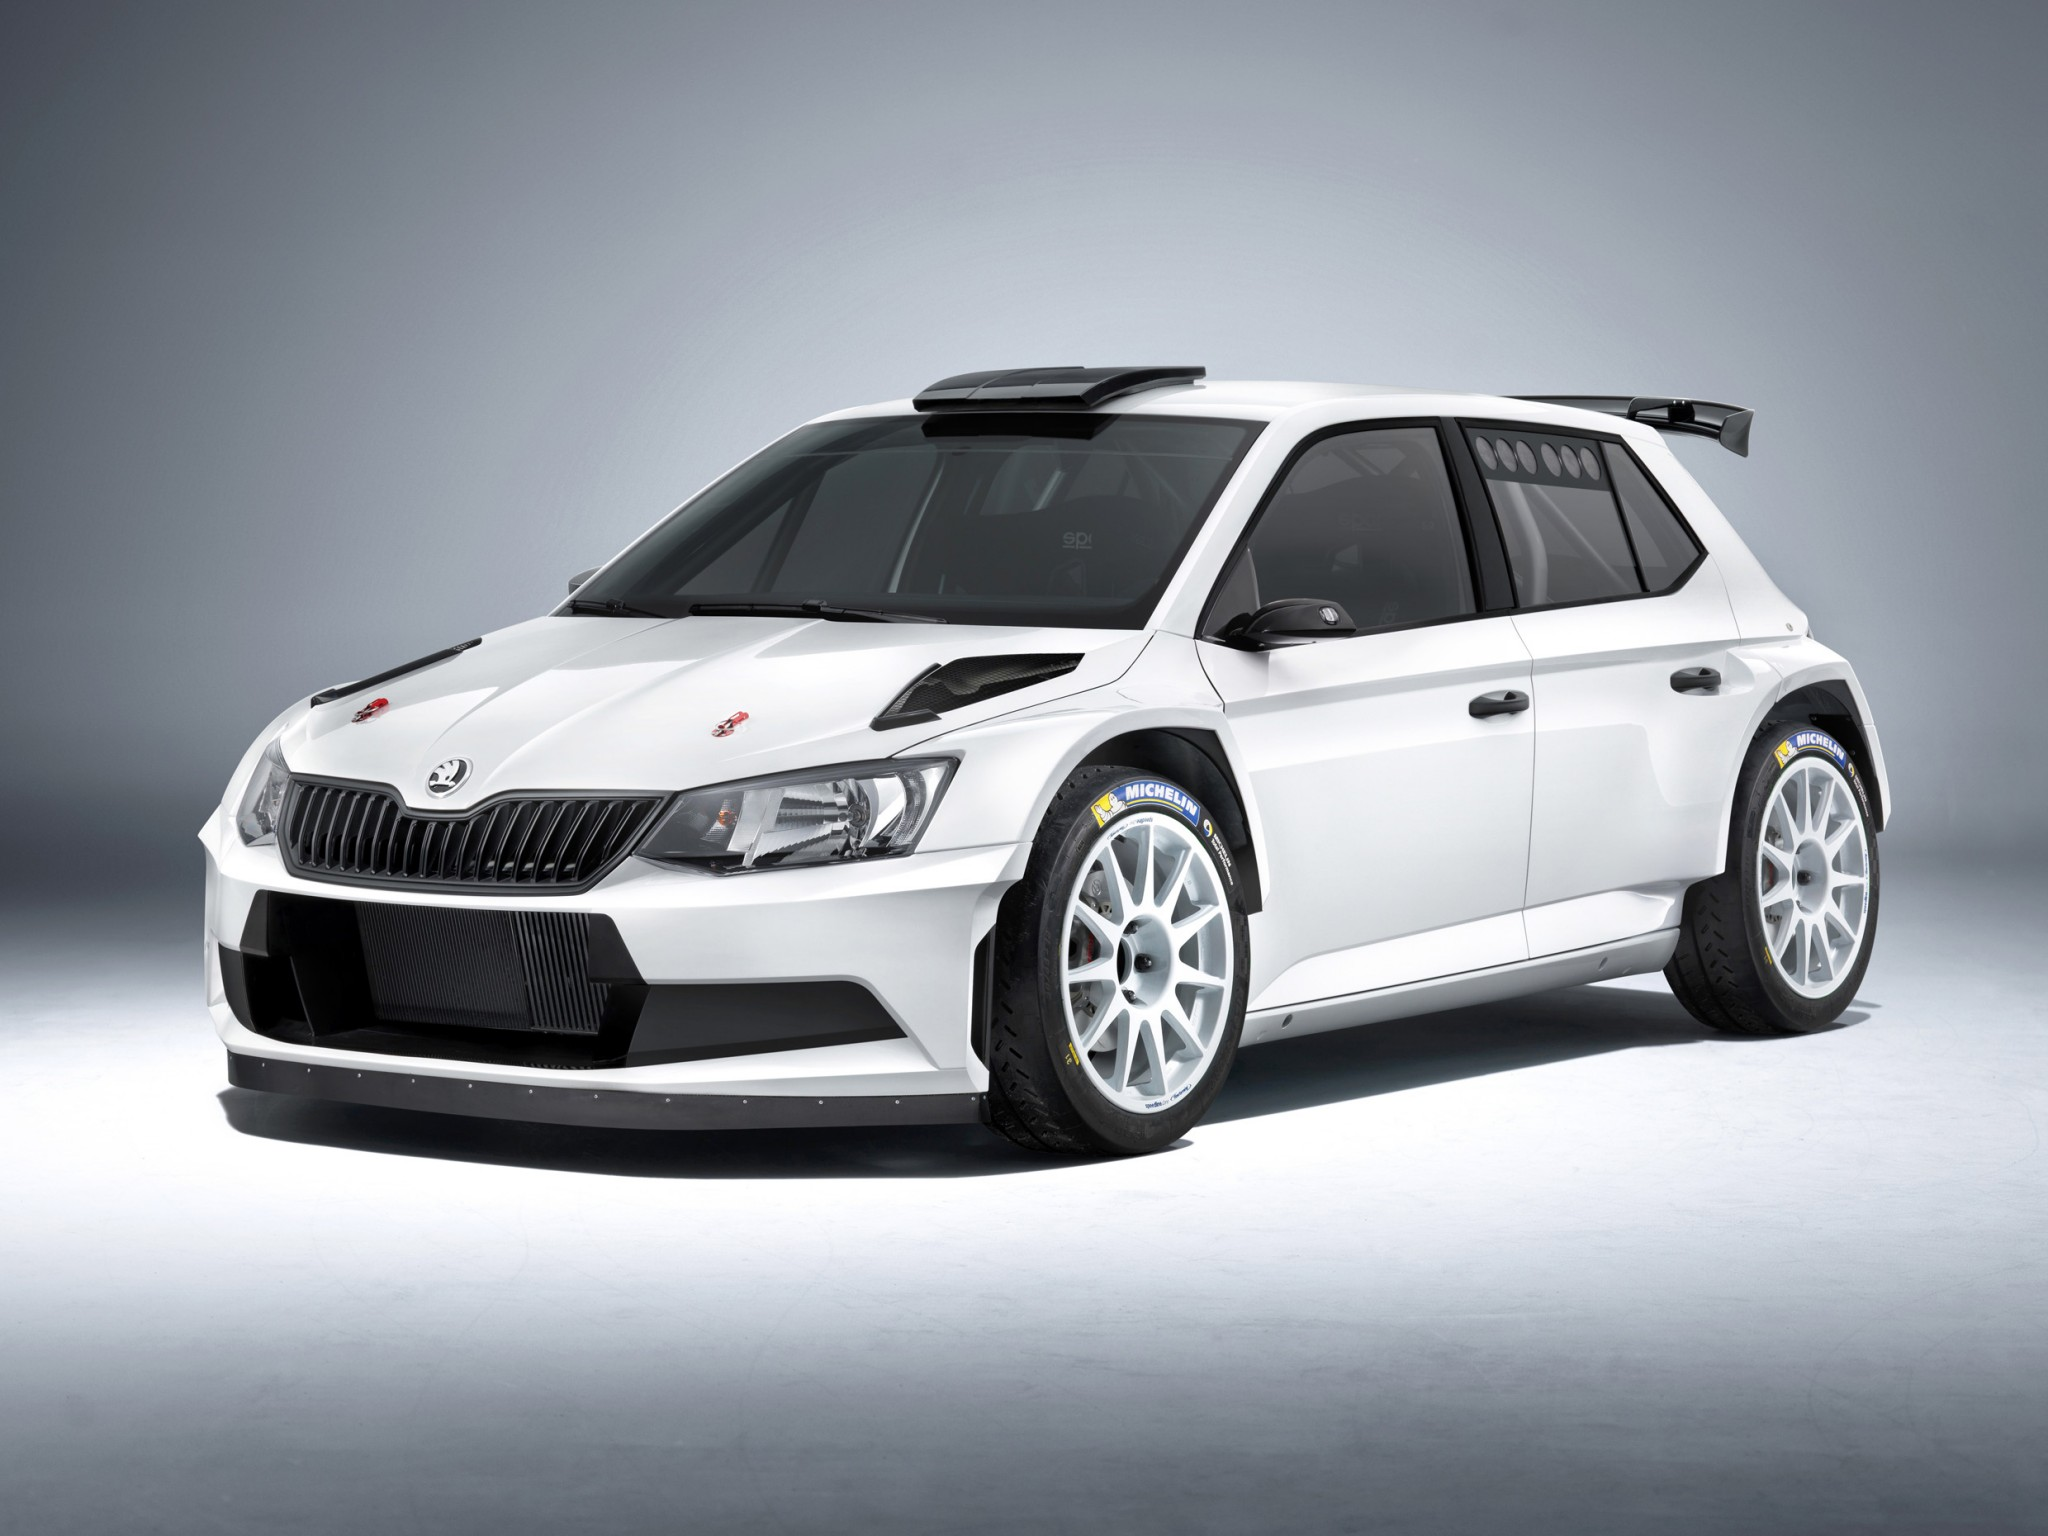 2016 skoda fabia r 5 approved for world rally practical motoring. Black Bedroom Furniture Sets. Home Design Ideas